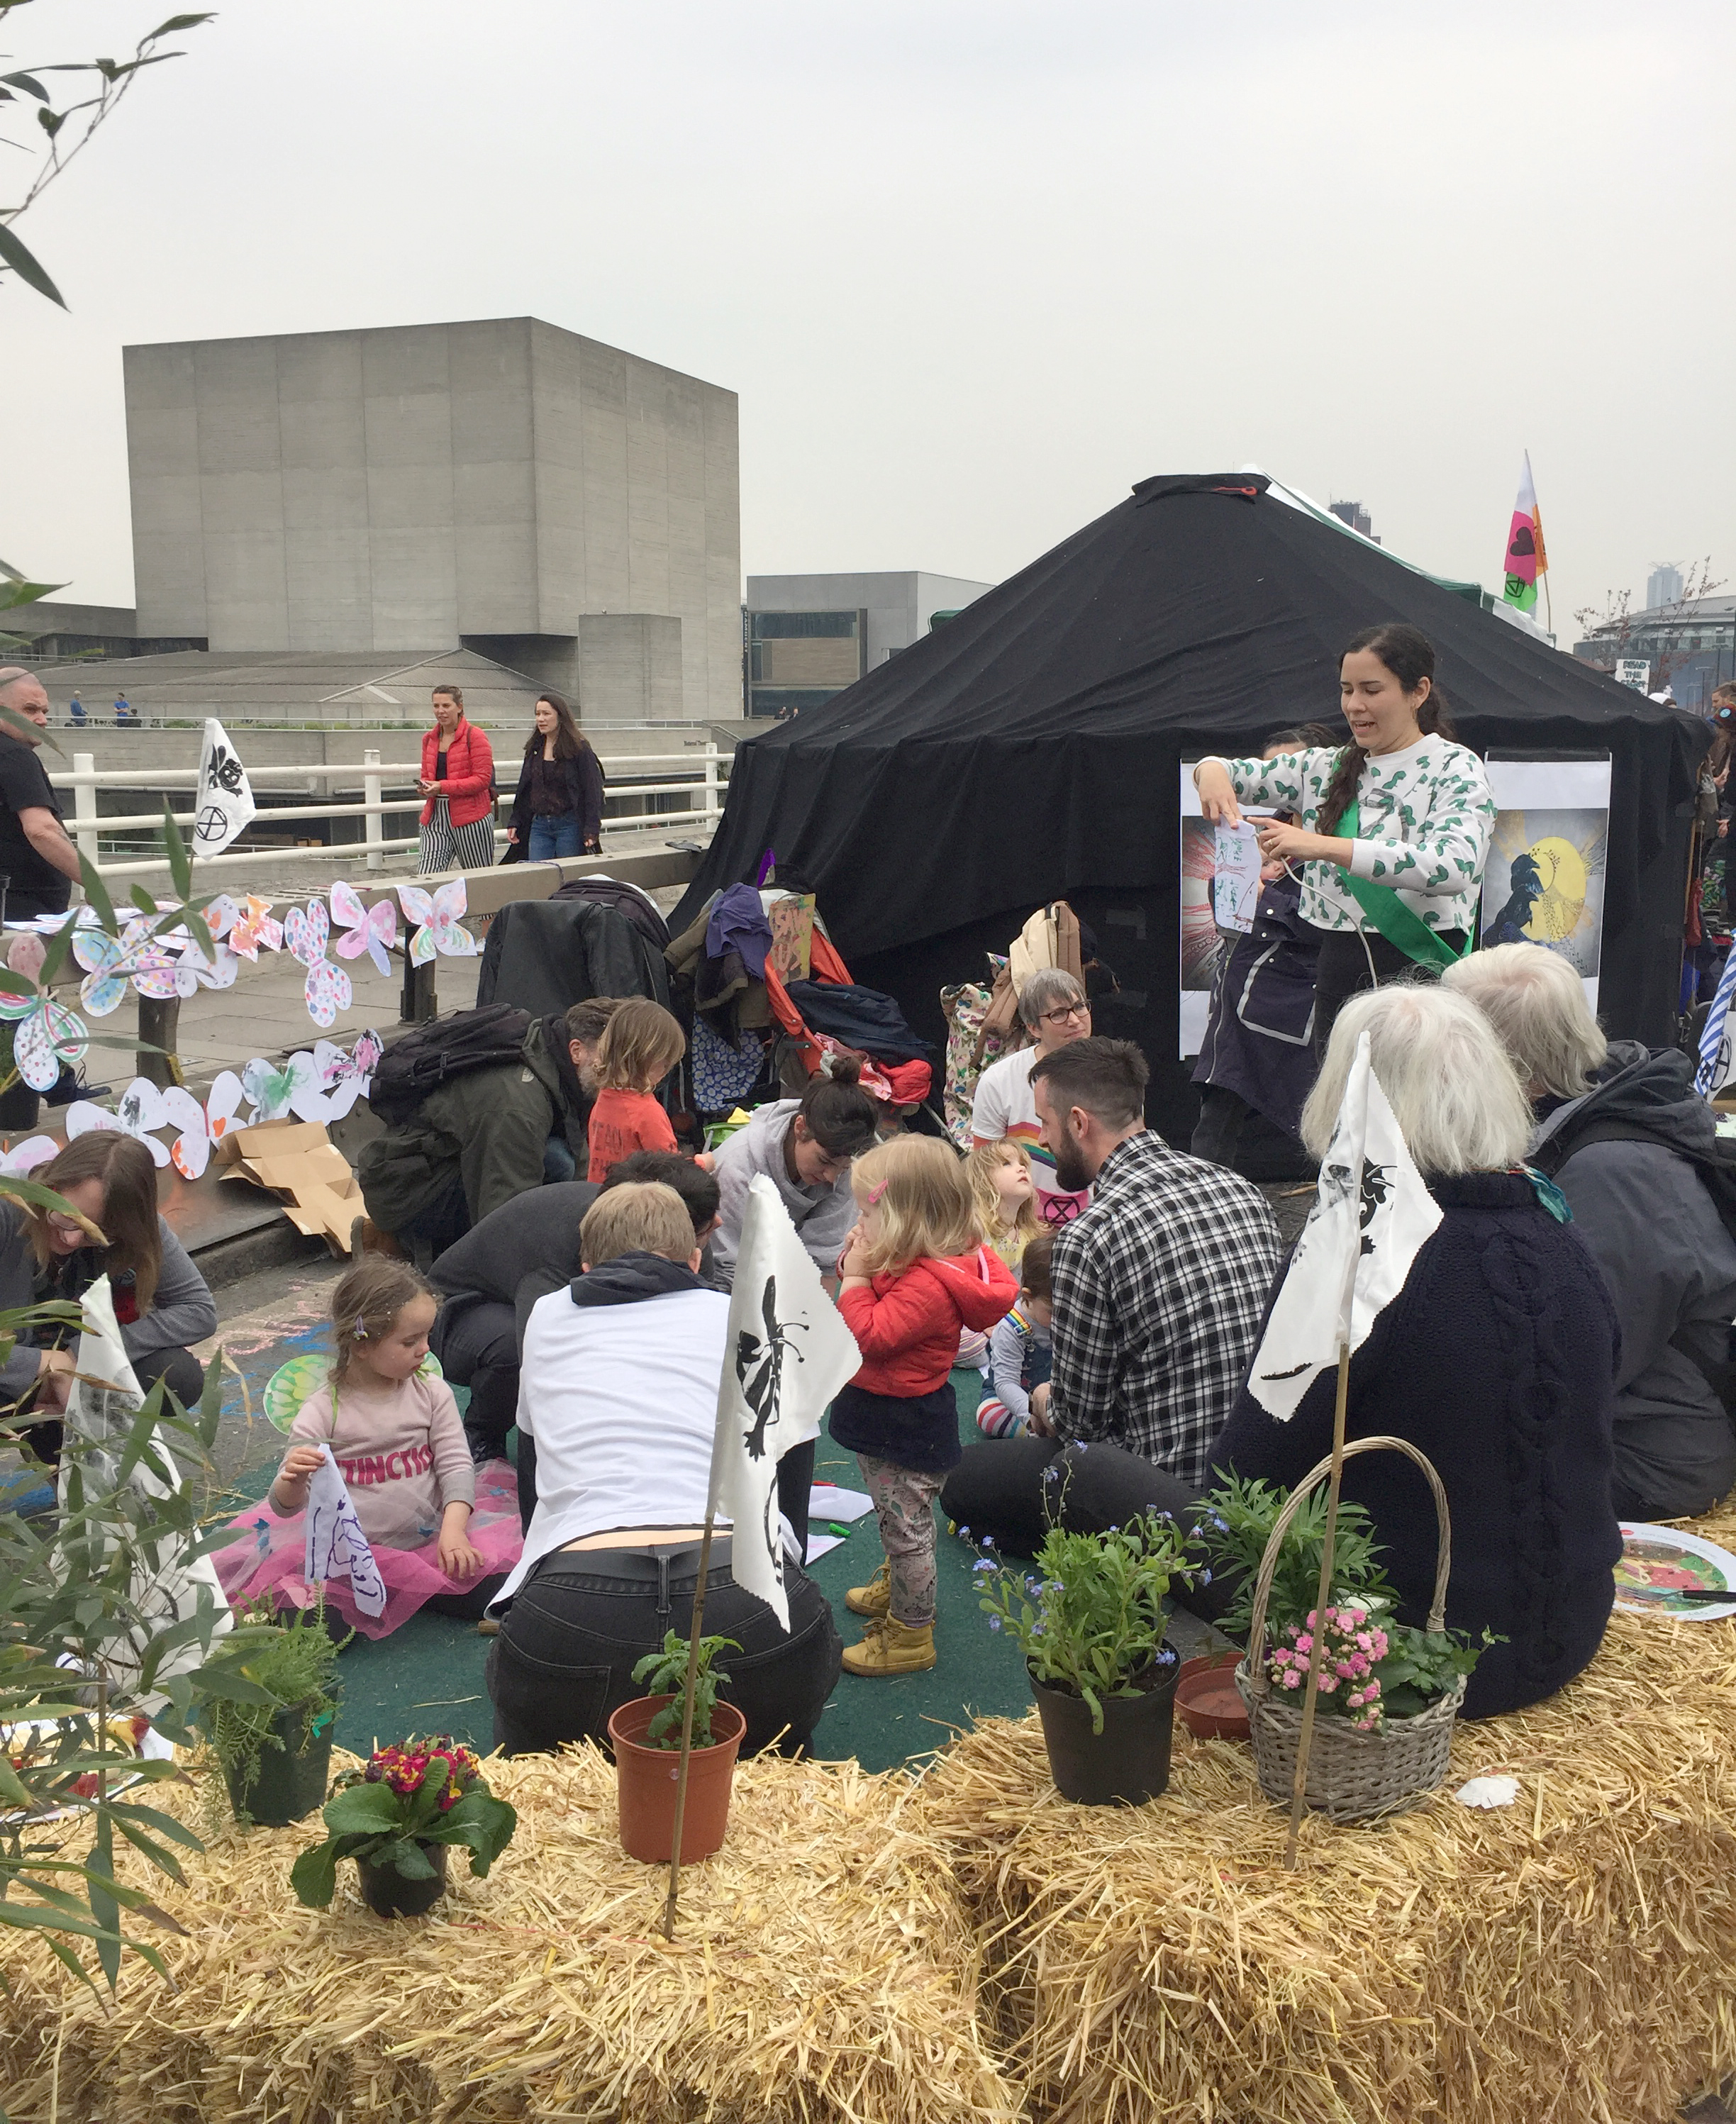 An arts and craft session with children on Waterloo Bridge